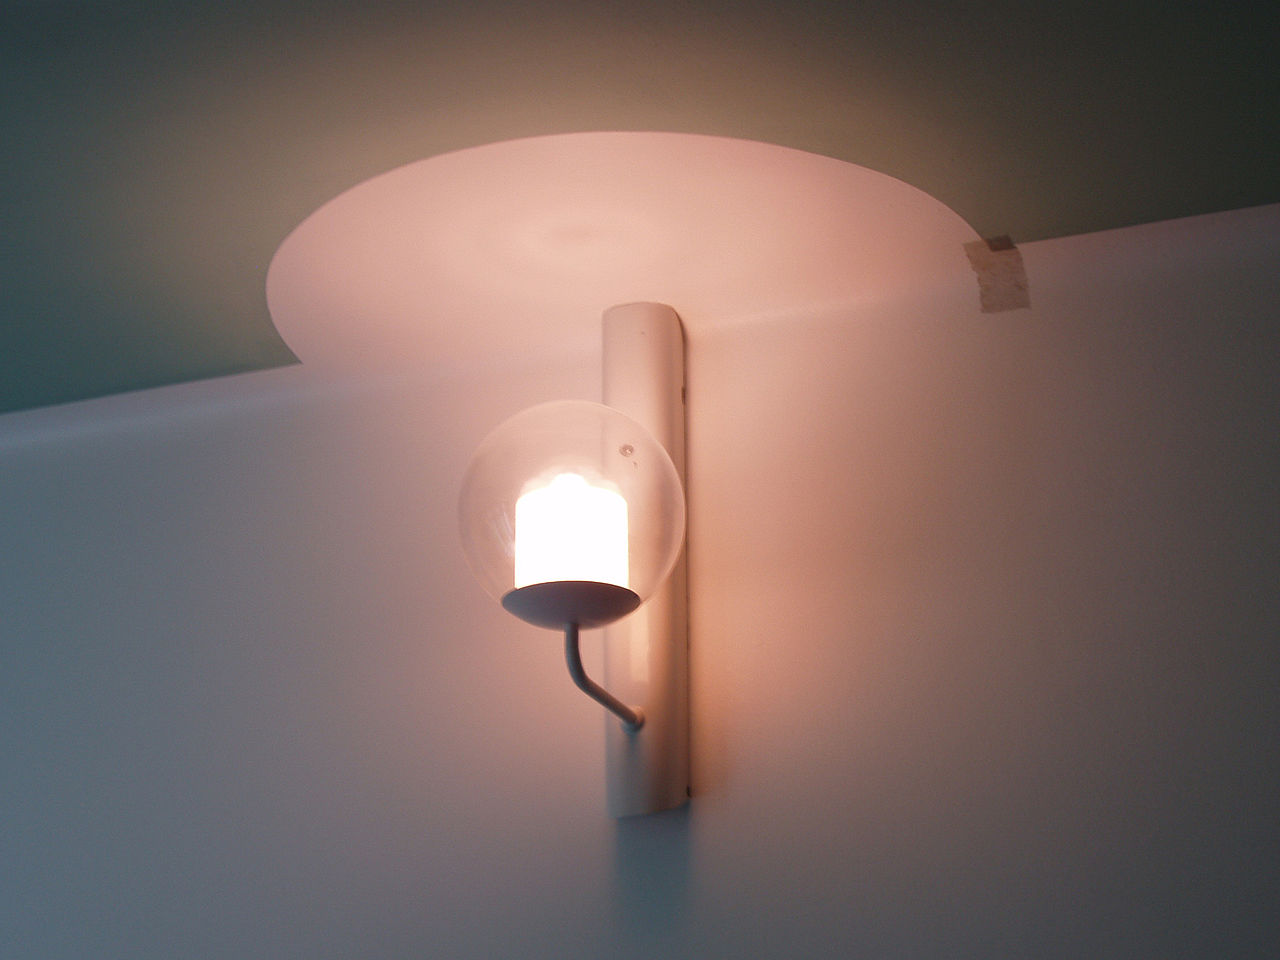 Alvar_Aalto,_Paimio_Sanatorium,_Bedroom_lamp.jpg